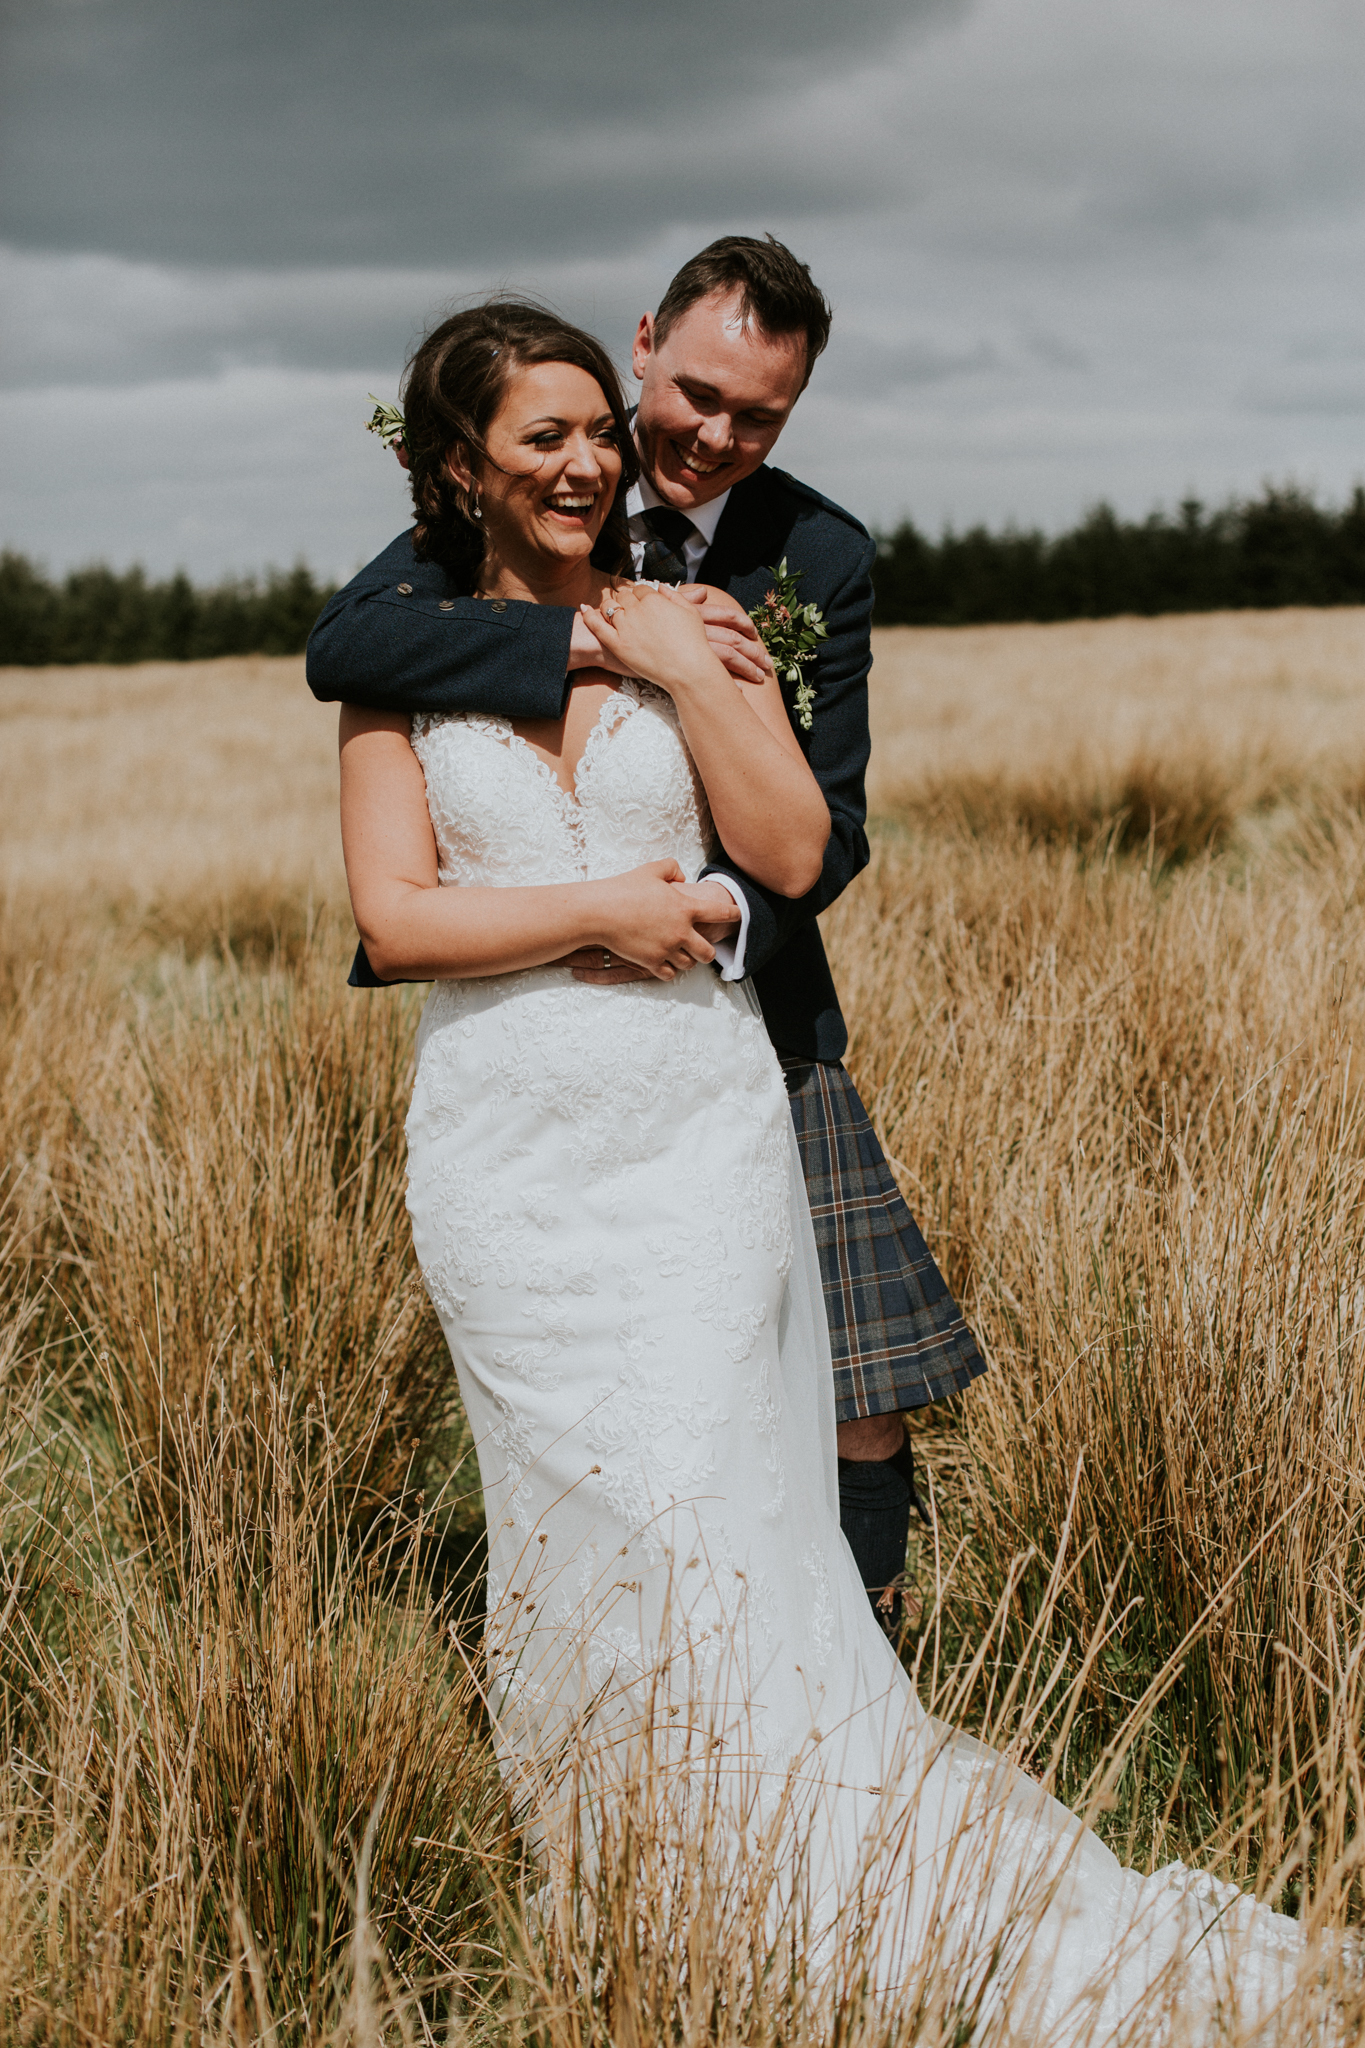 The bride and groom laughing during their couple shoot at Harelaw farm